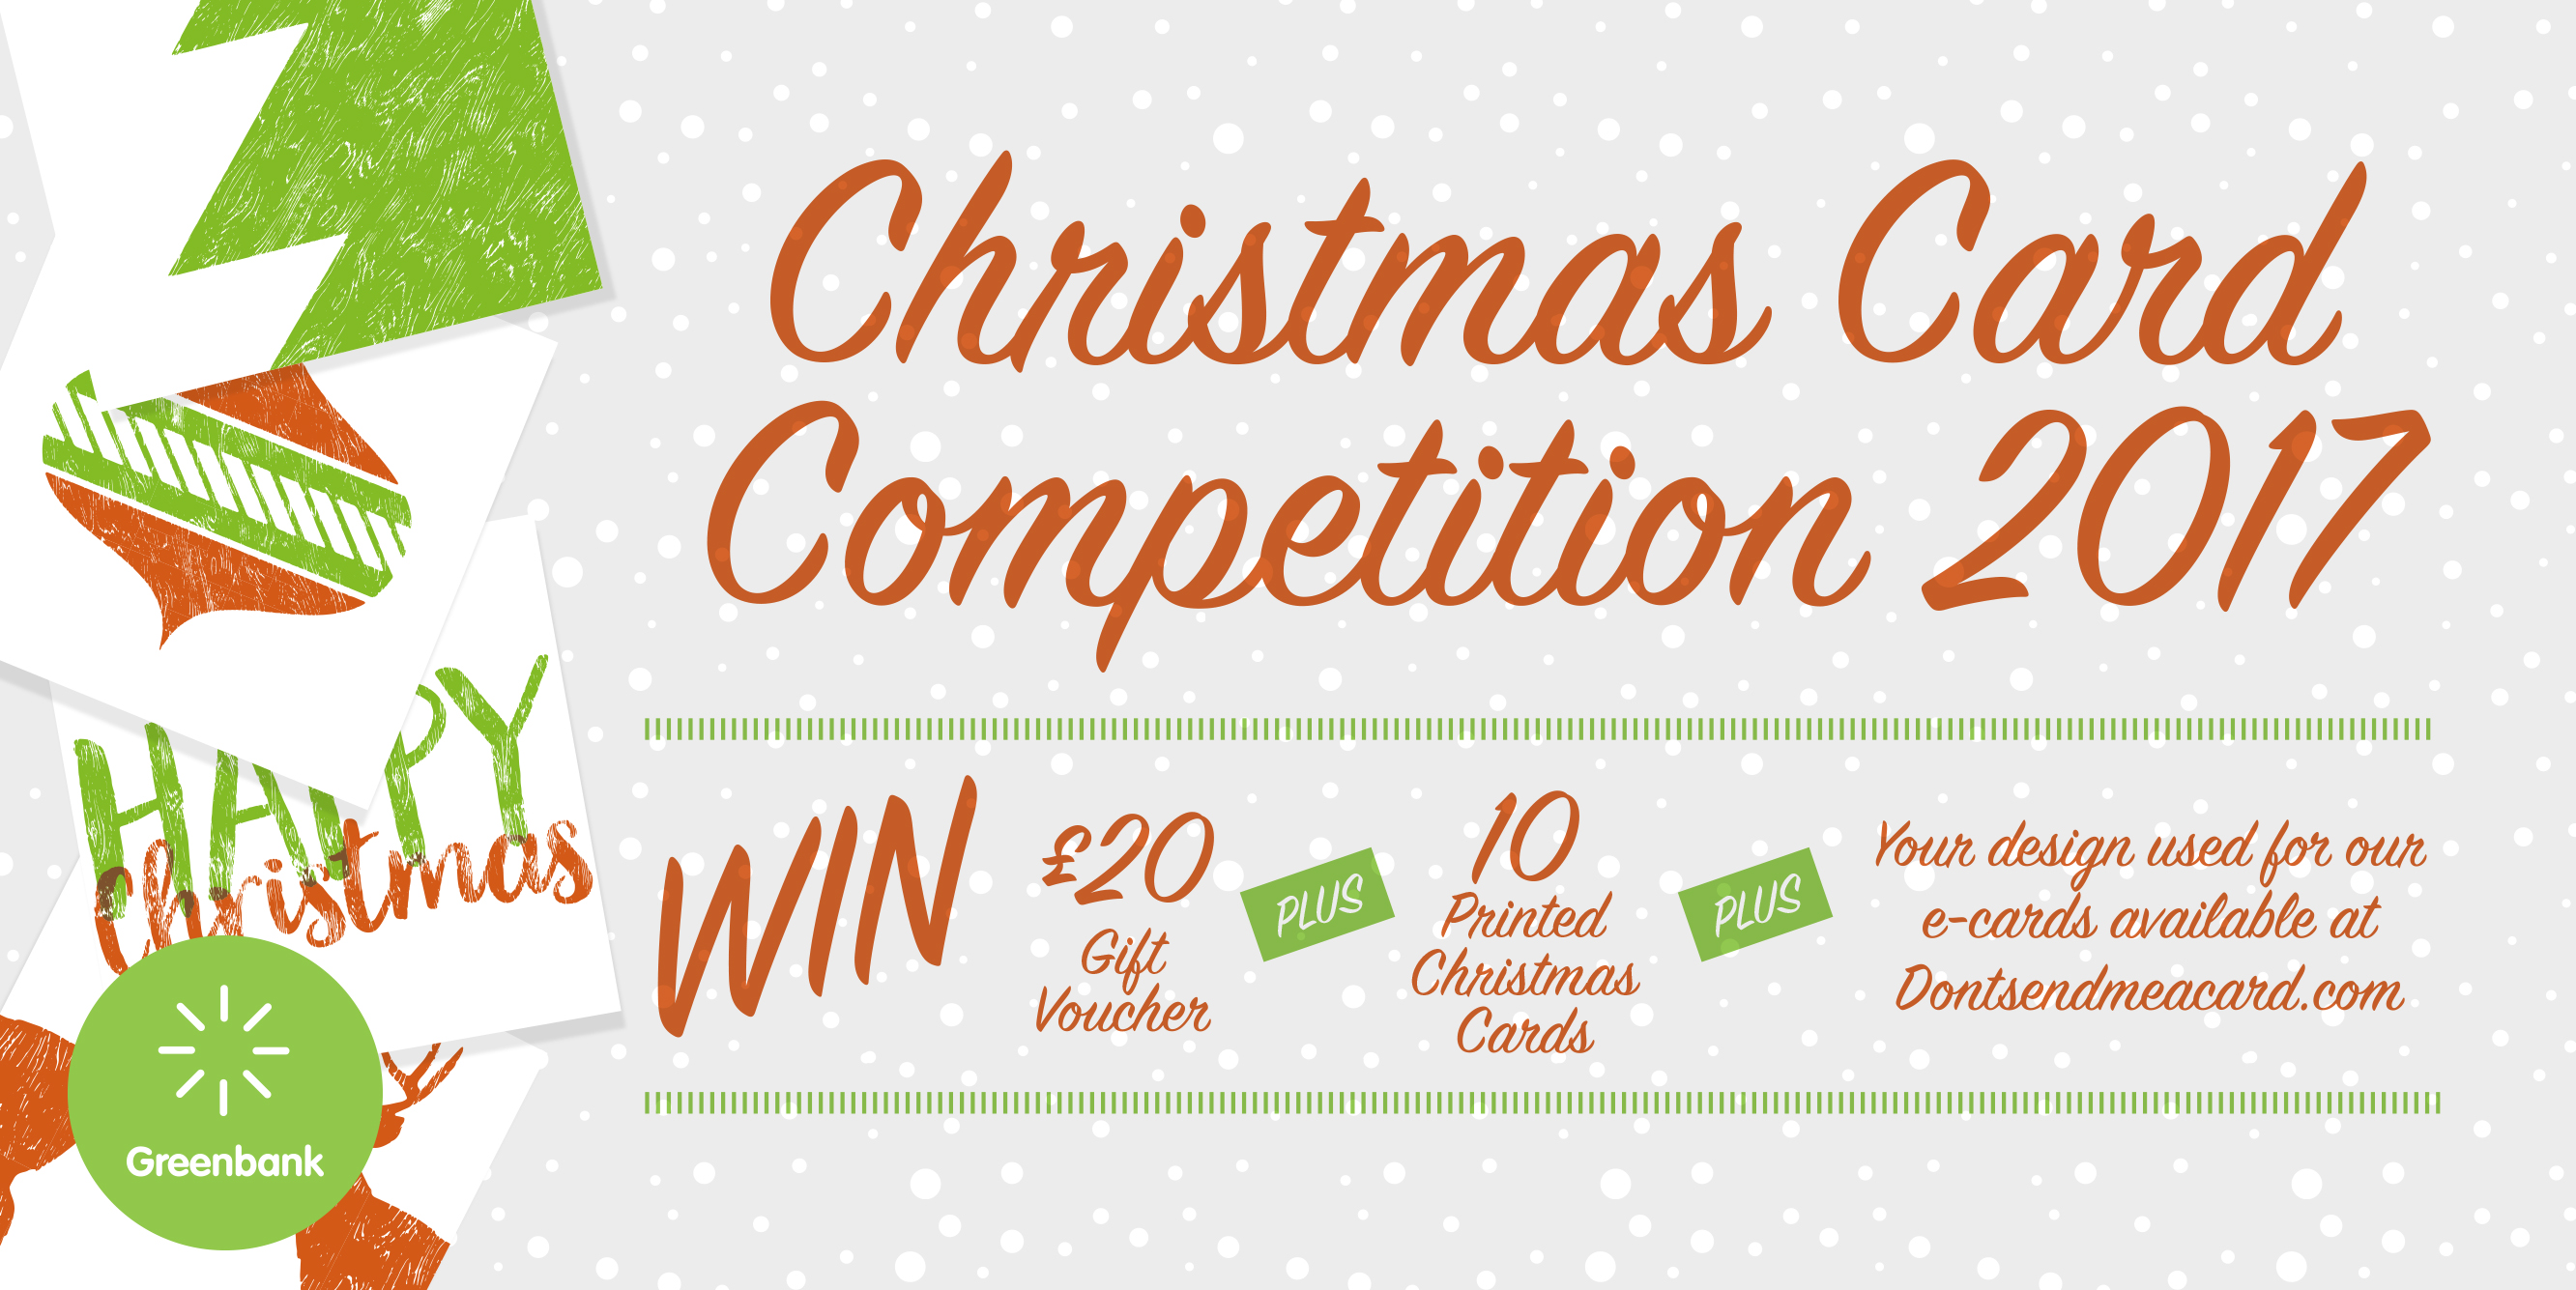 Enter Our Competition To Design A Christmas Card For Greenbank